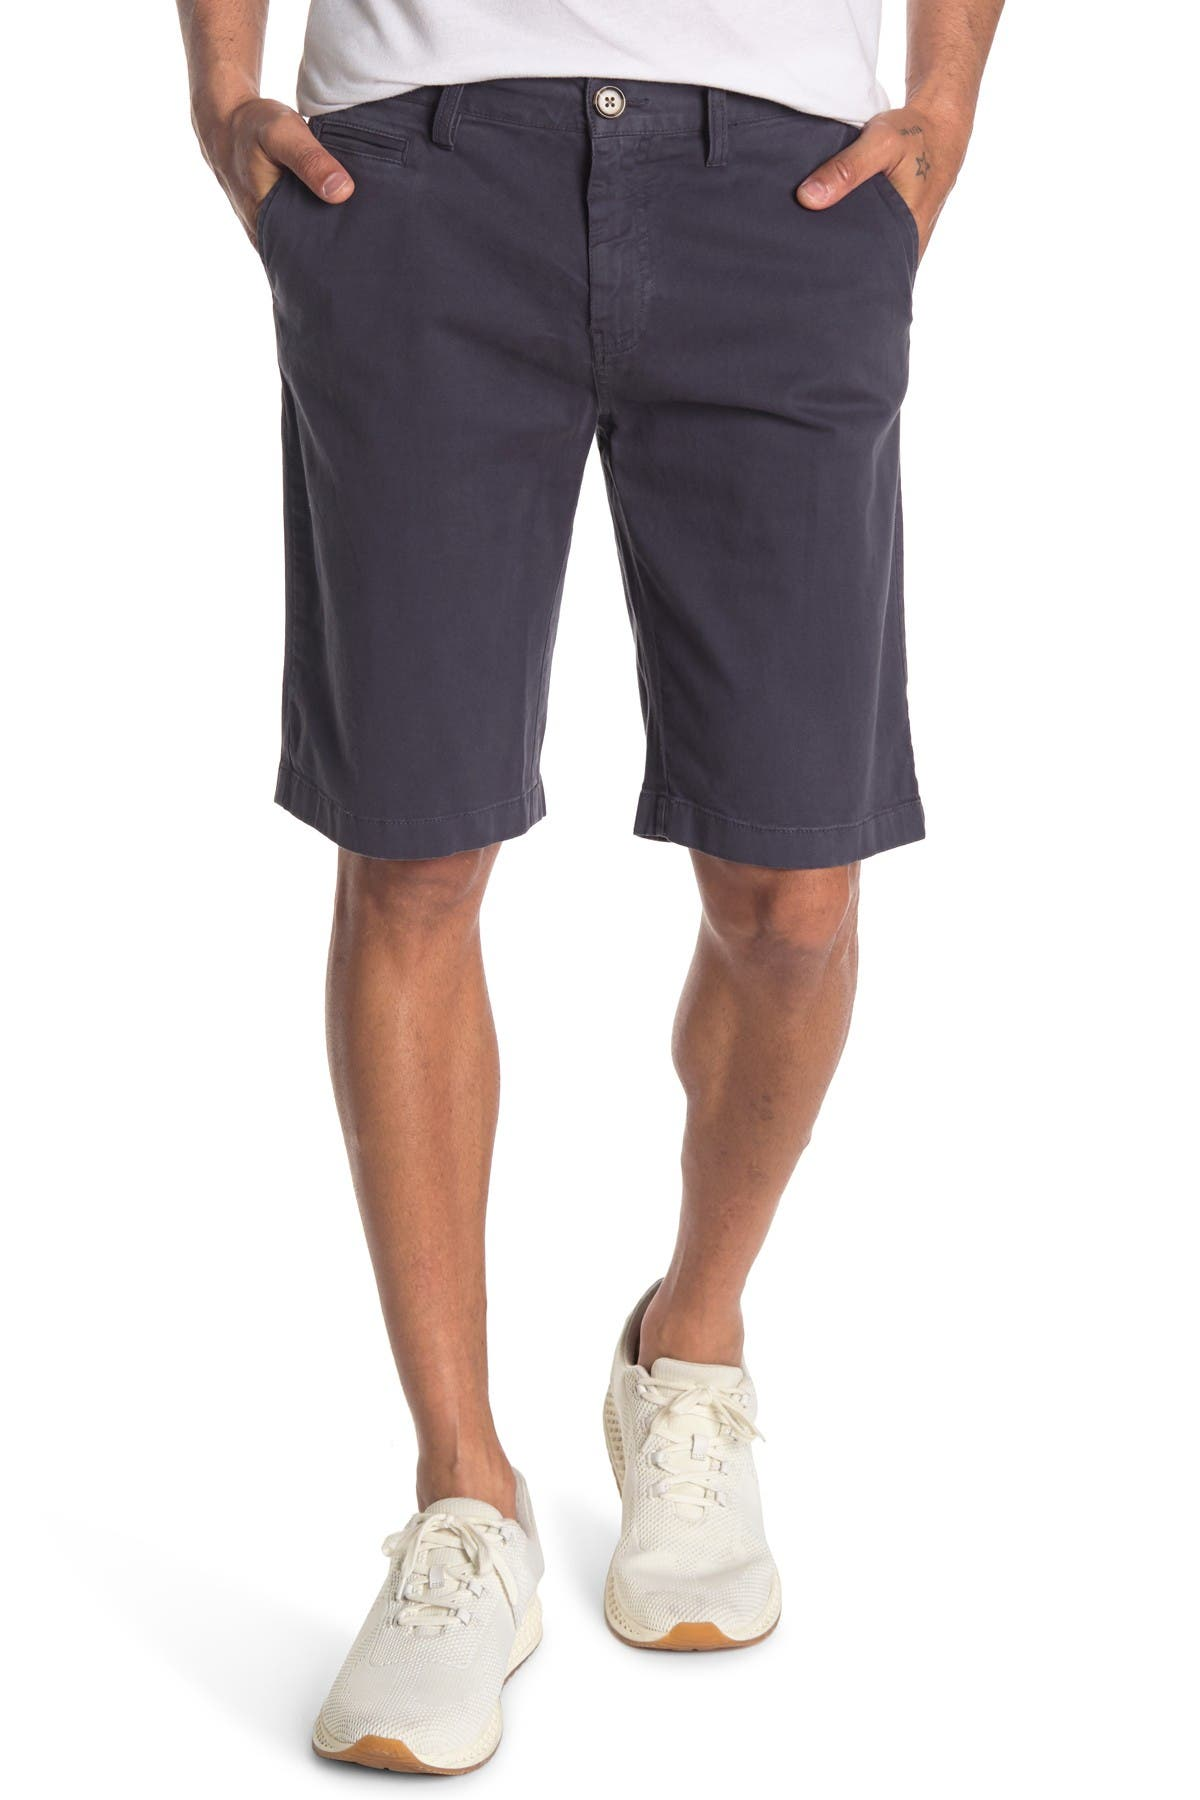 Image of 14th & Union Garment Dye Stretch Shorts